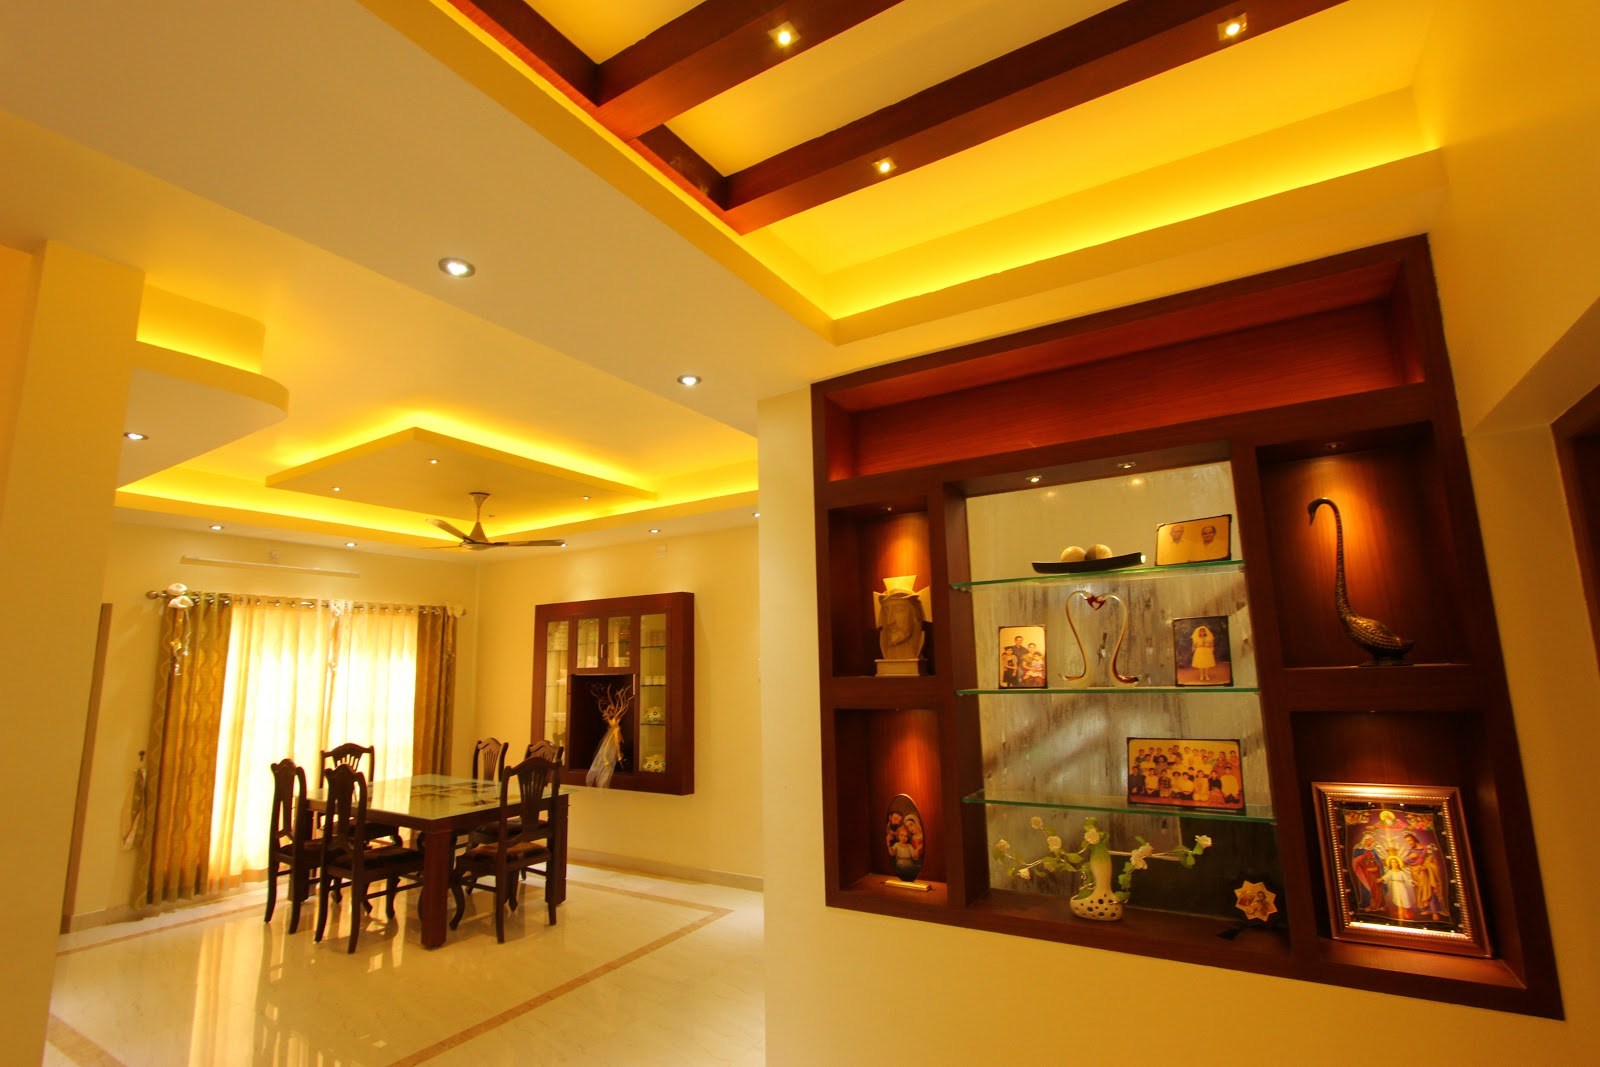 Shilpakala interiors award winning home interior design for Home internal design